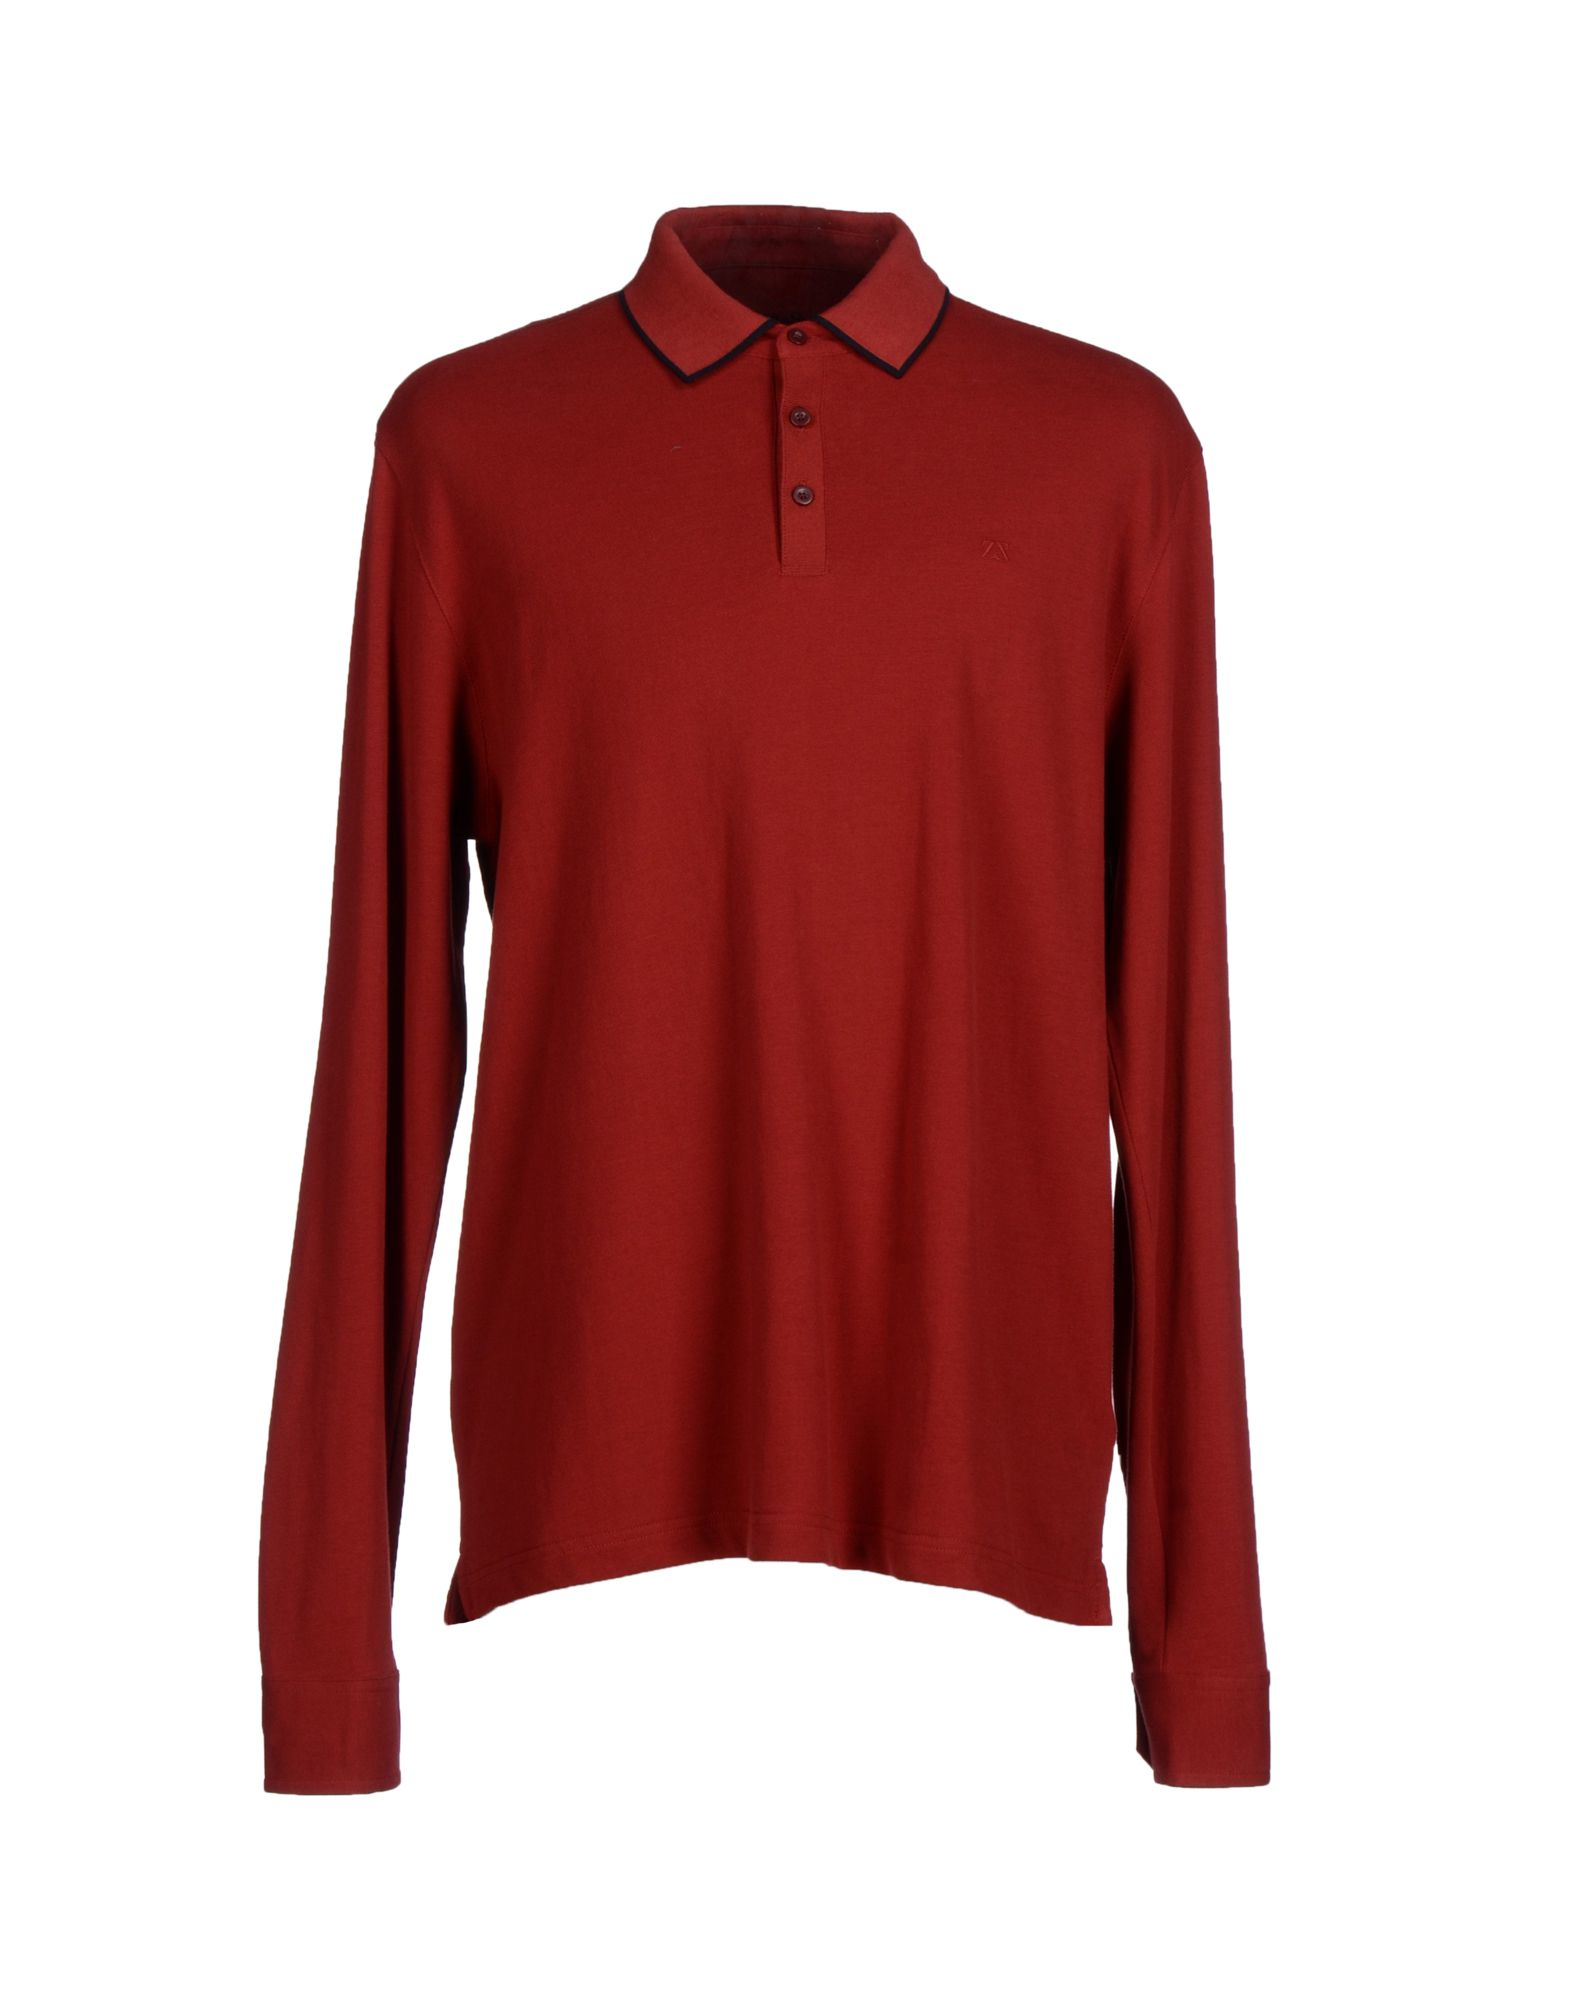 Zegna sport polo shirt in red for men brick red lyst for Zegna polo shirts sale